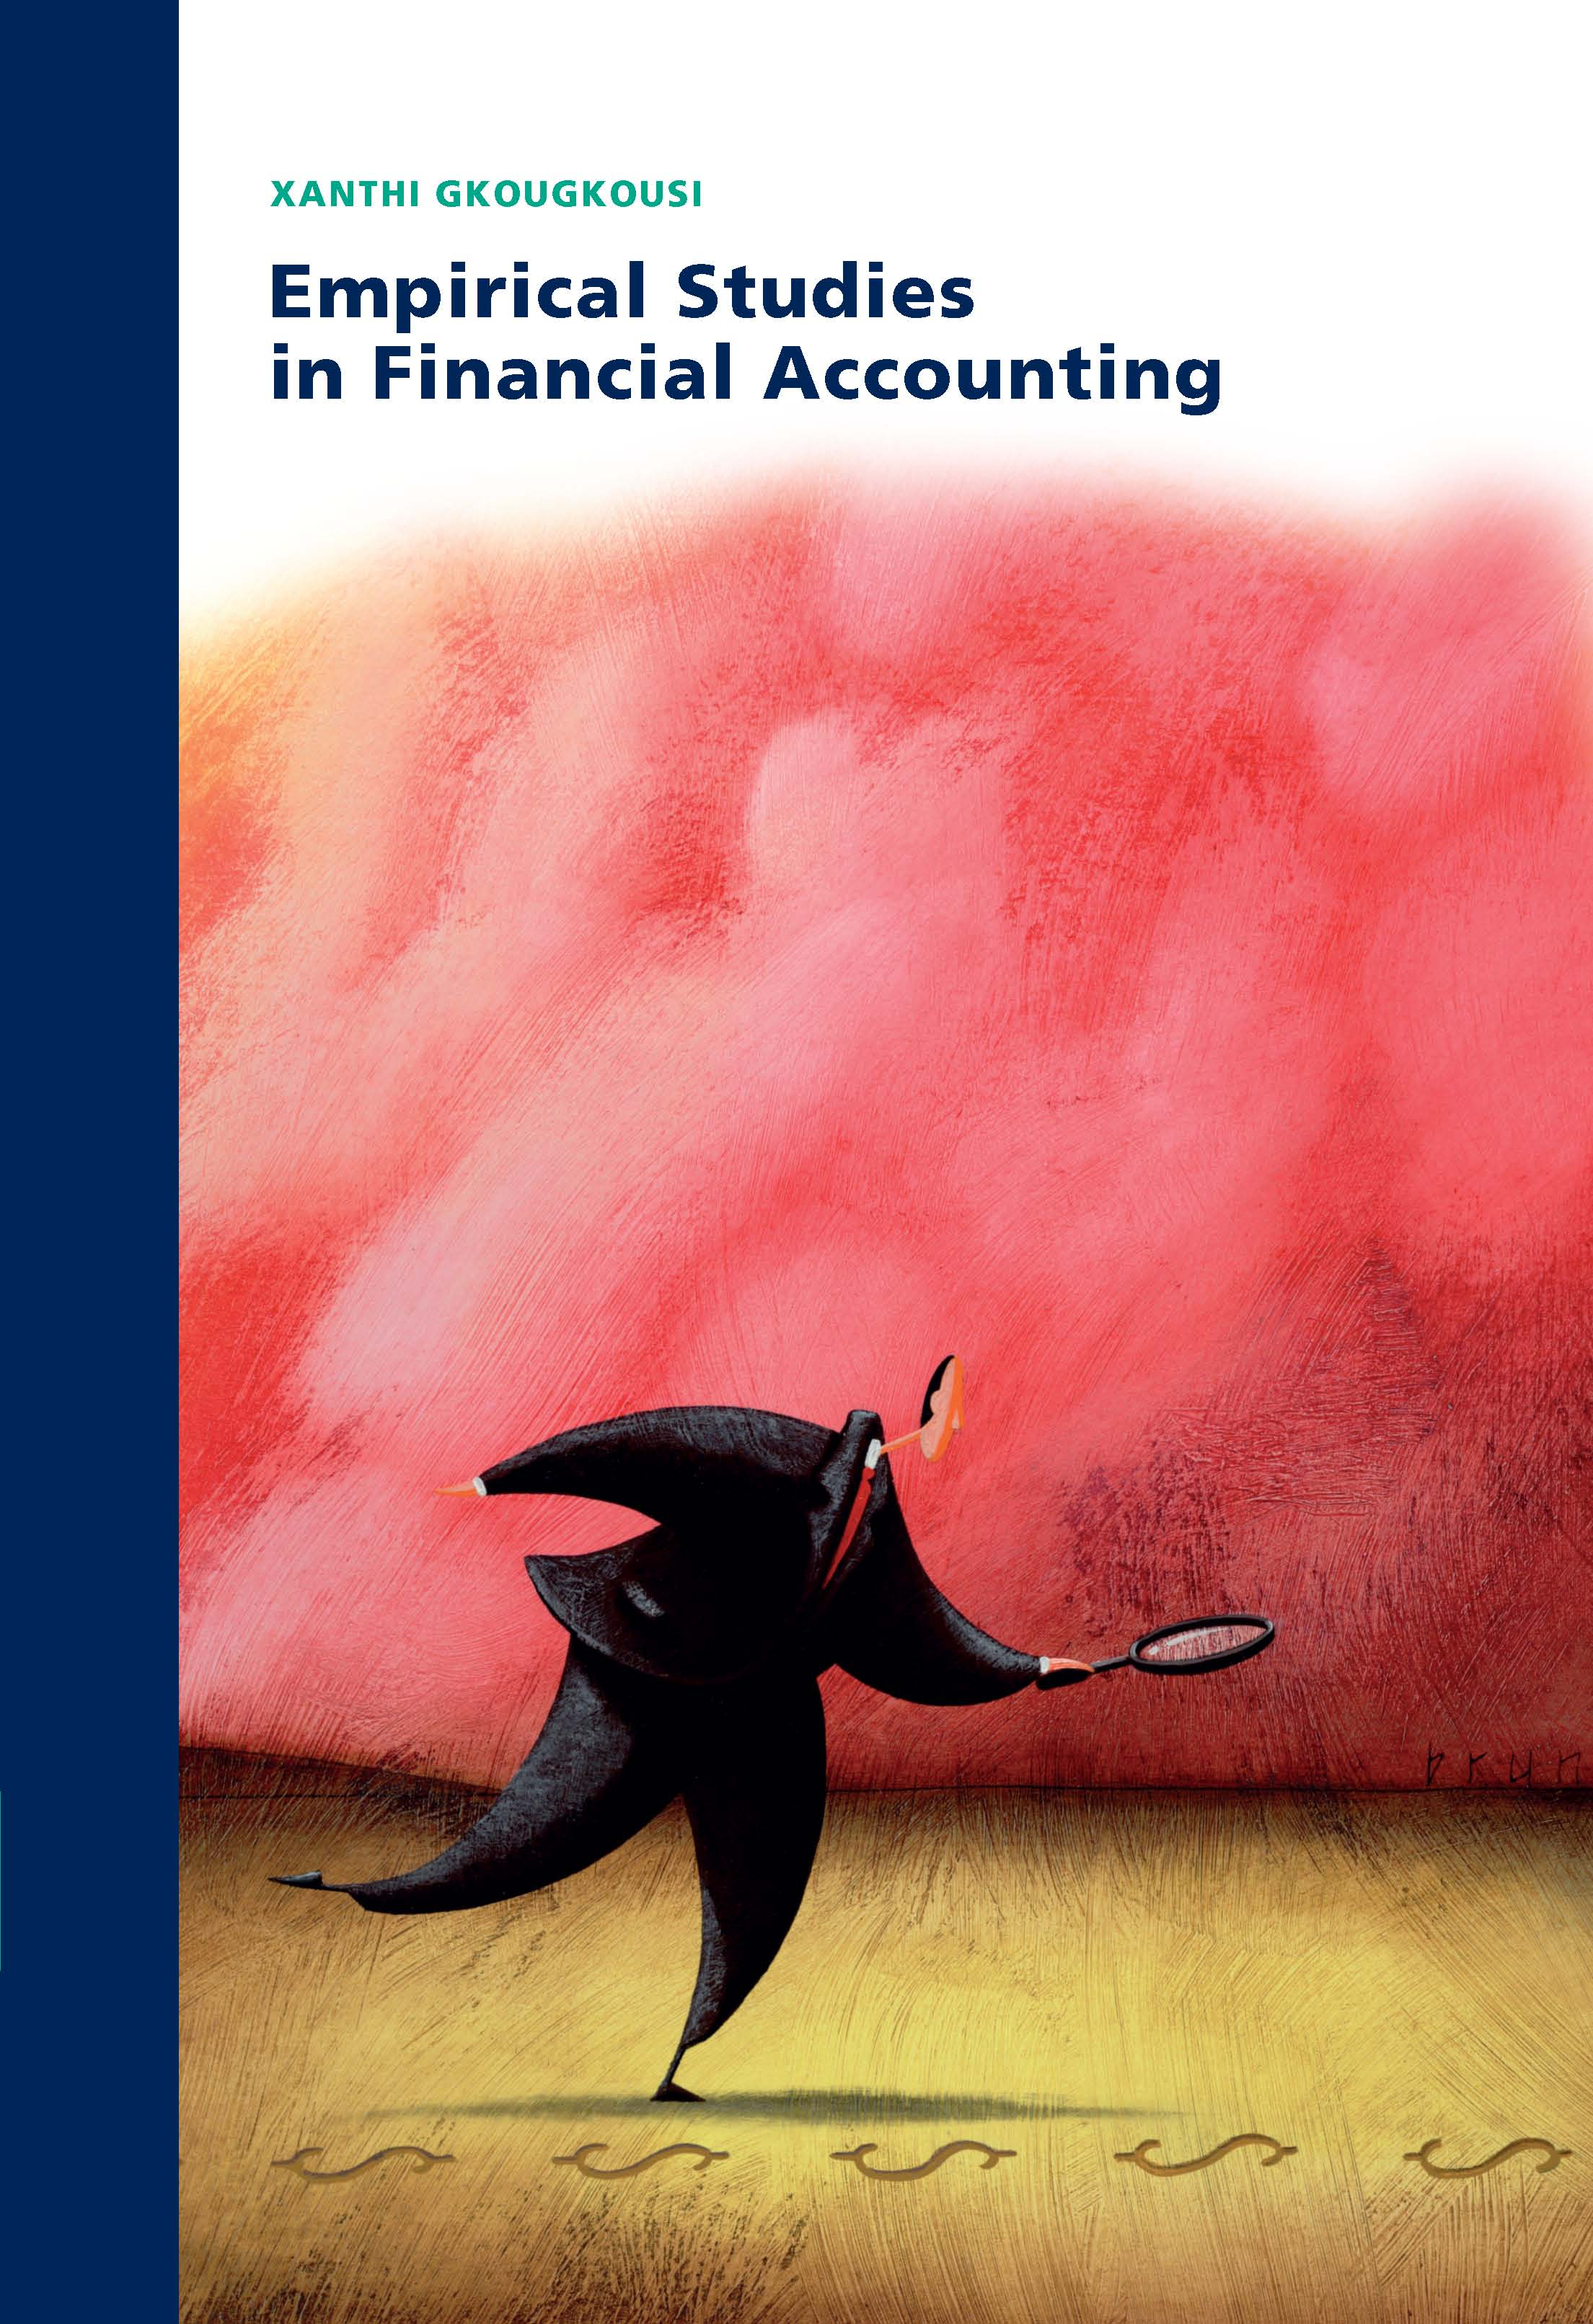 Empirical Studies in Financial Accounting